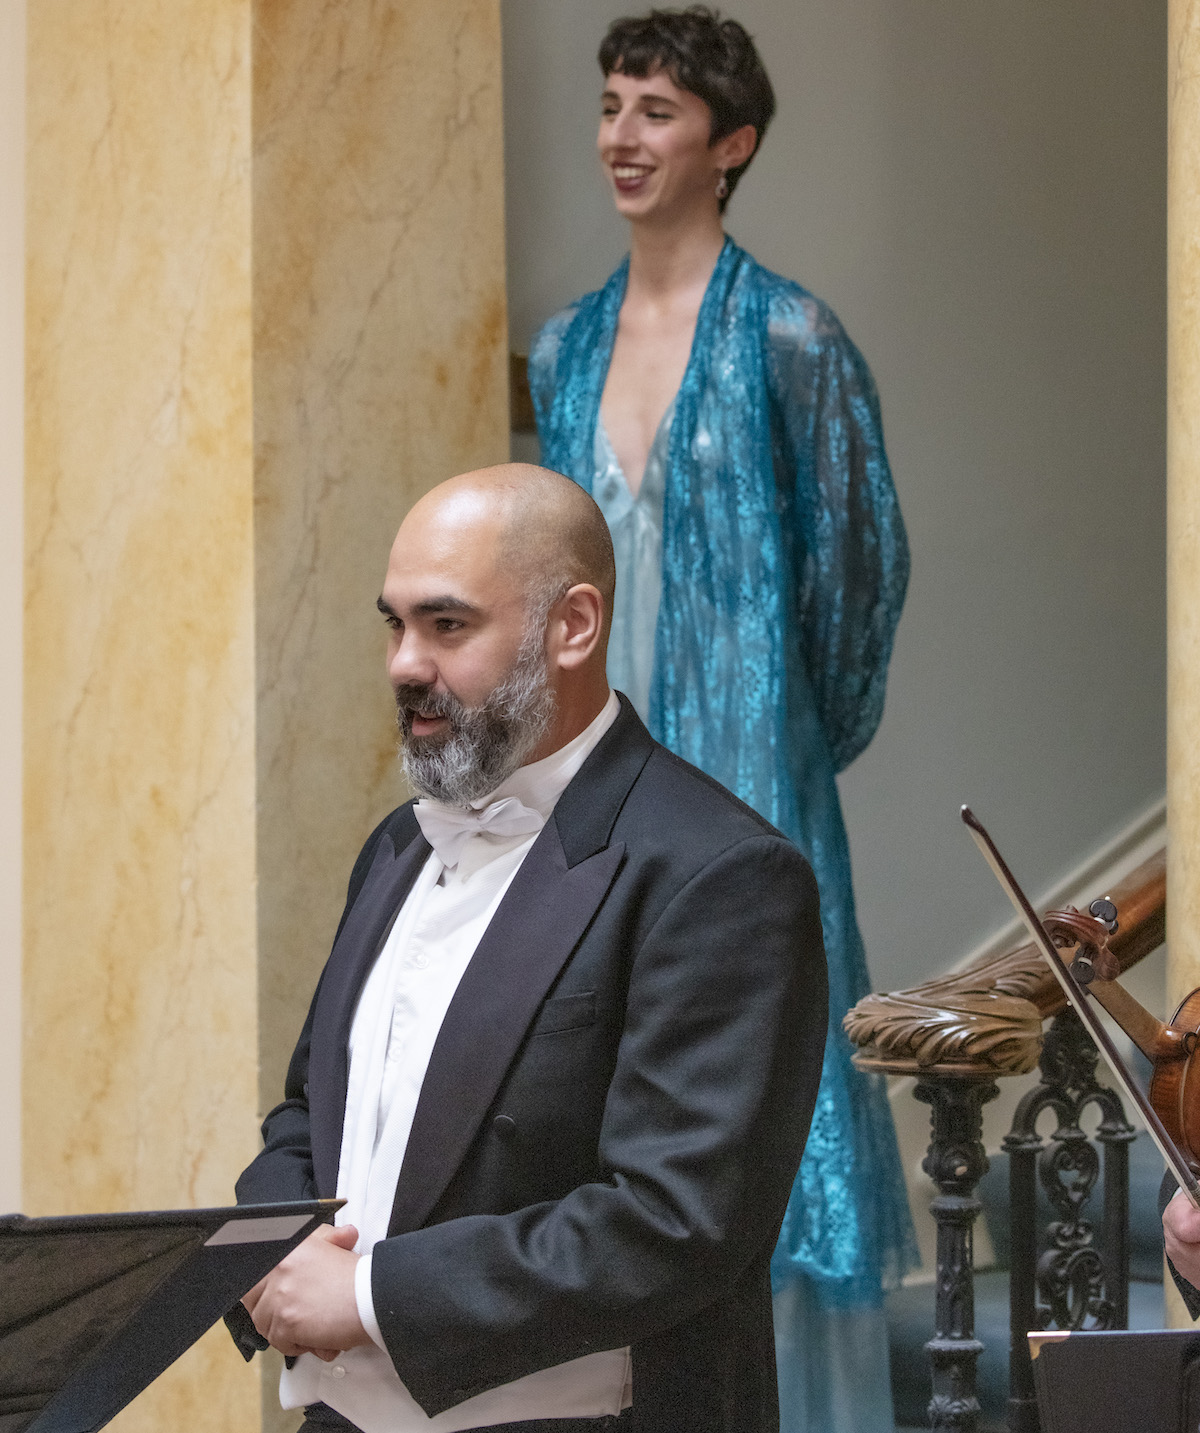 Tenor Ben Thapa with Soprano Charlotte Broker at the Leonardslee Gardens Live Music Night - article on Title Sussex - www.titlesussex.co.uk